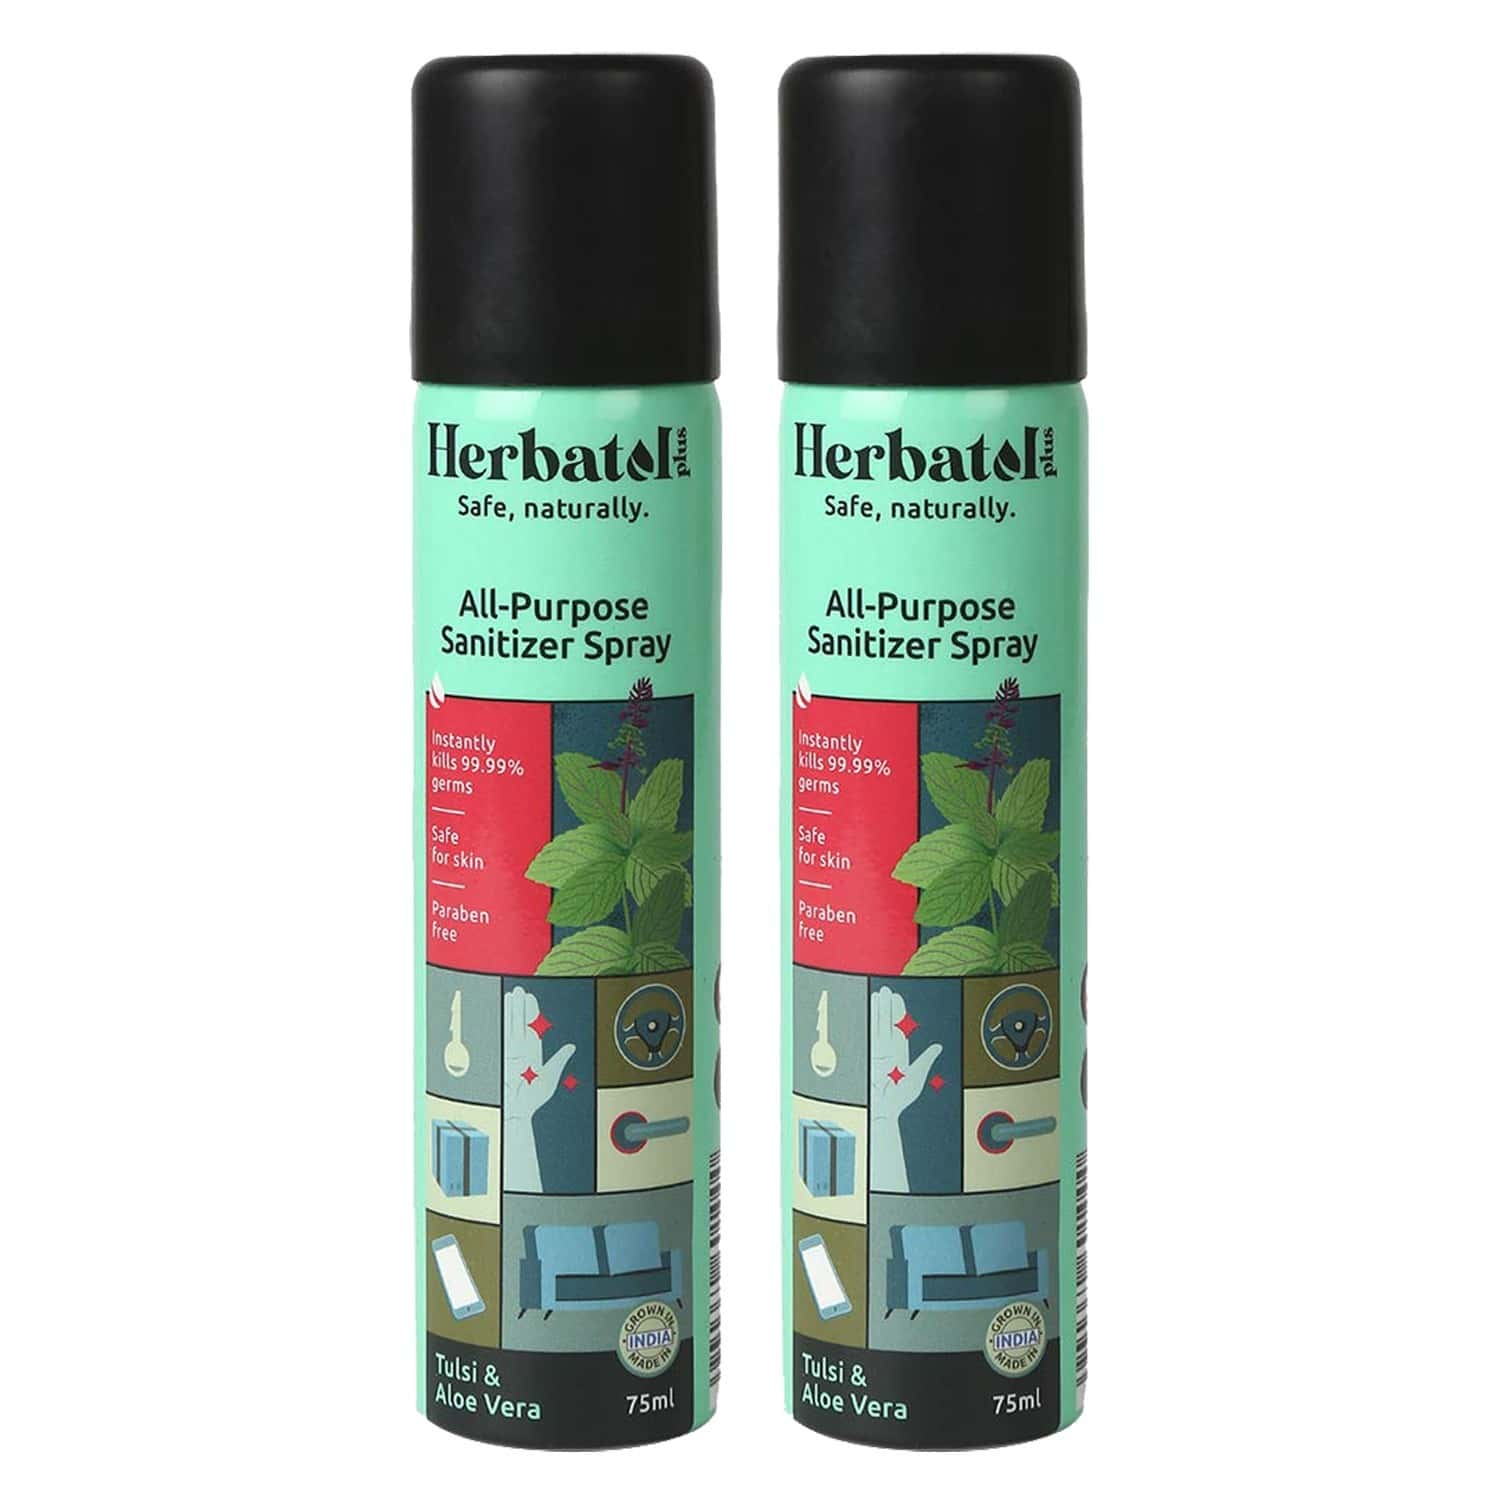 Herbatol Plus All Purpose Hygiene Spray With 99.99% Germ Protection | Enriched With Aloe Vera & Tulsi (pack Of 2) - 150ml